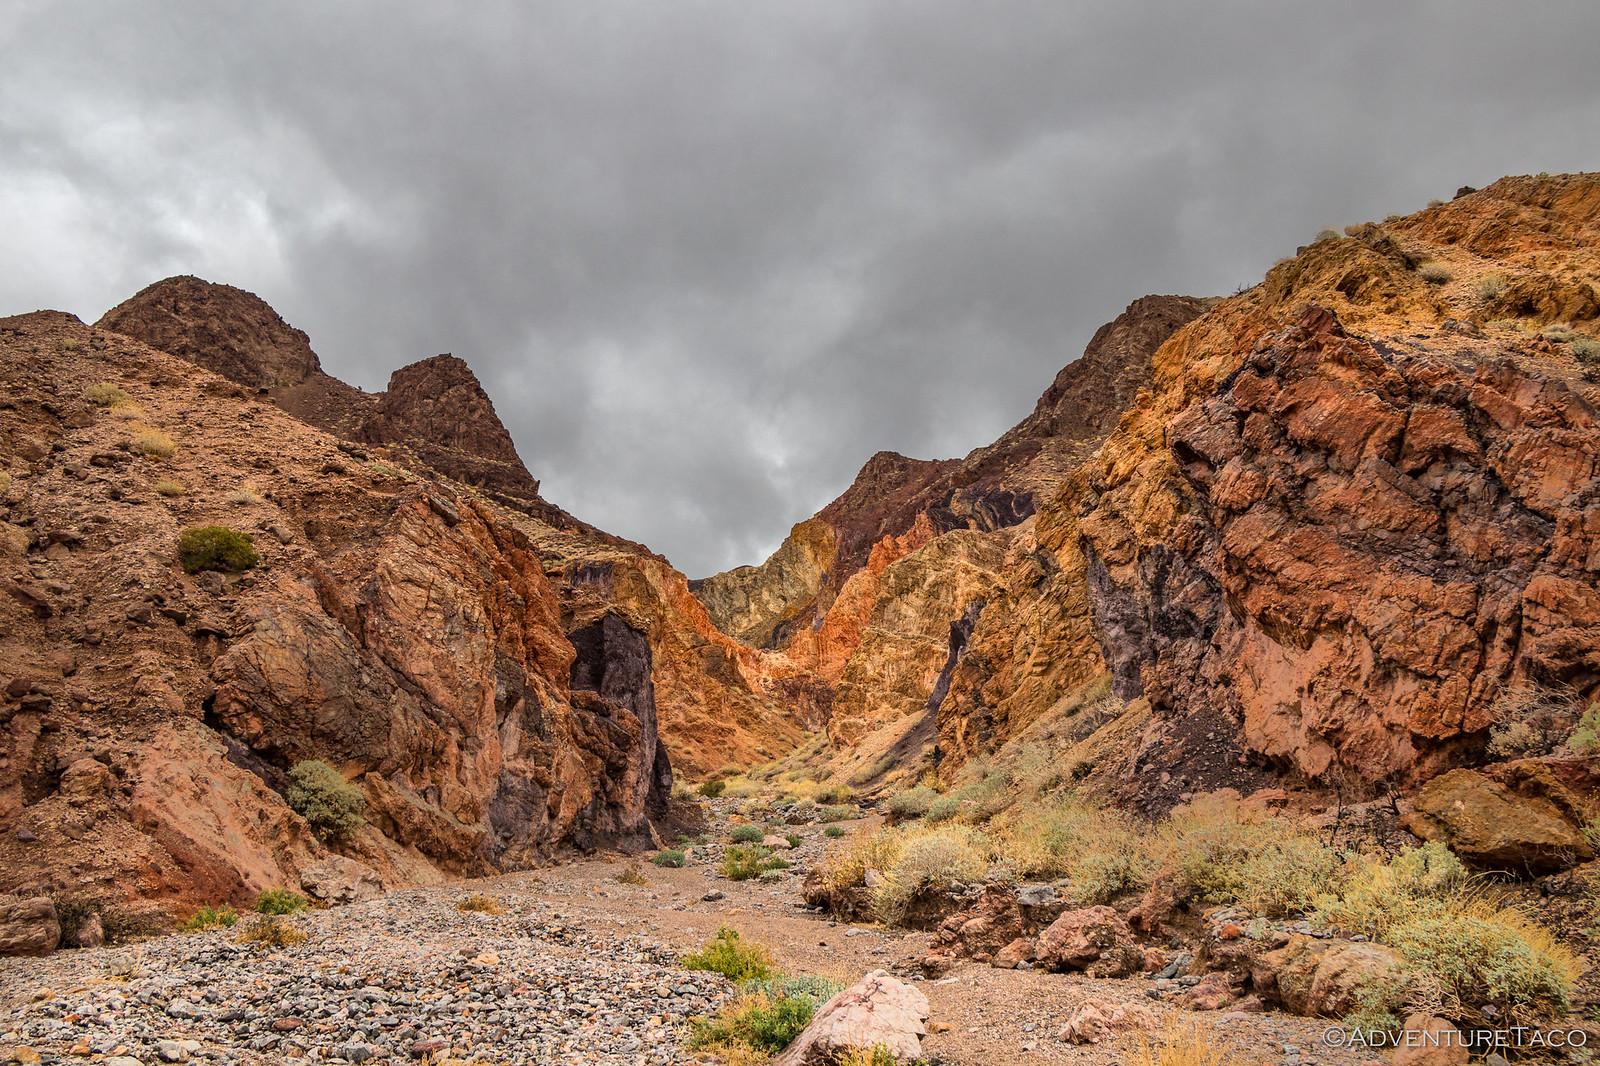 Kaleidoscope Canyon, Death Valley National Park